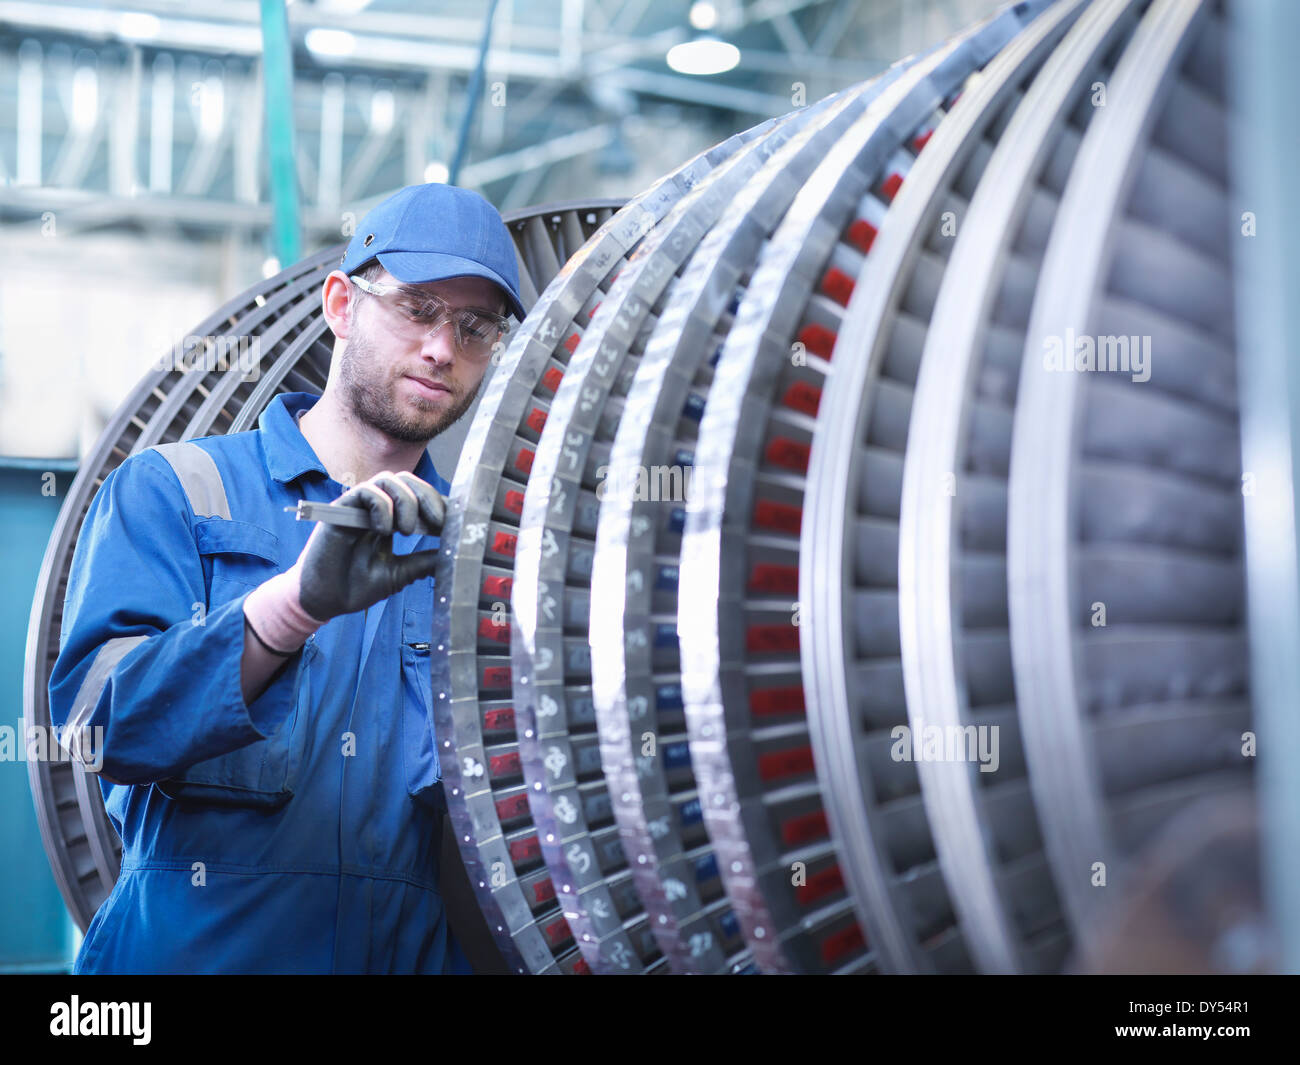 Engineer measuring high pressure steam turbine blade in workshop - Stock Image